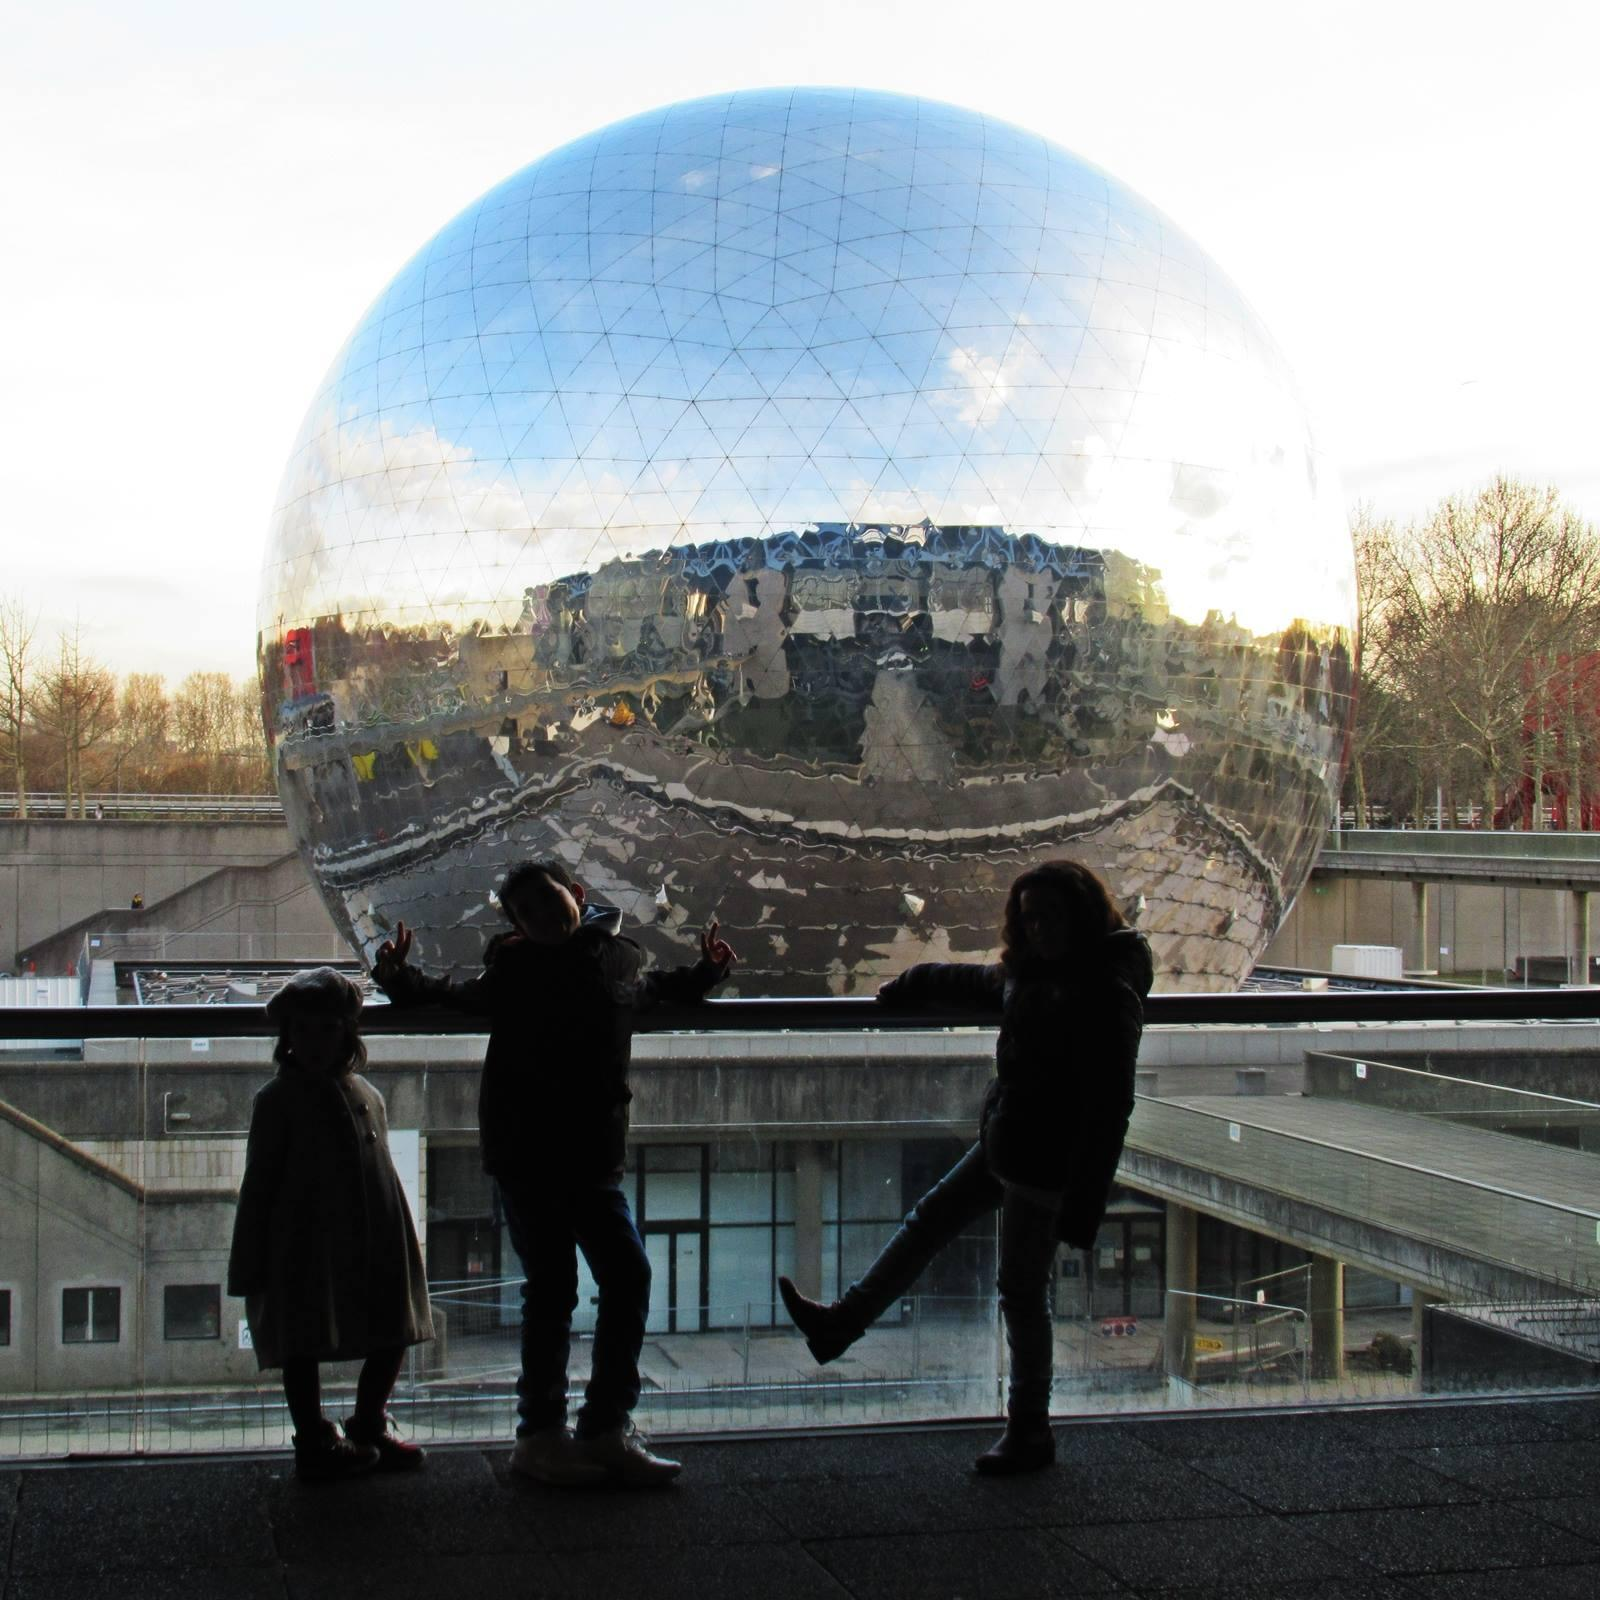 La cite des enfants villette paris 14